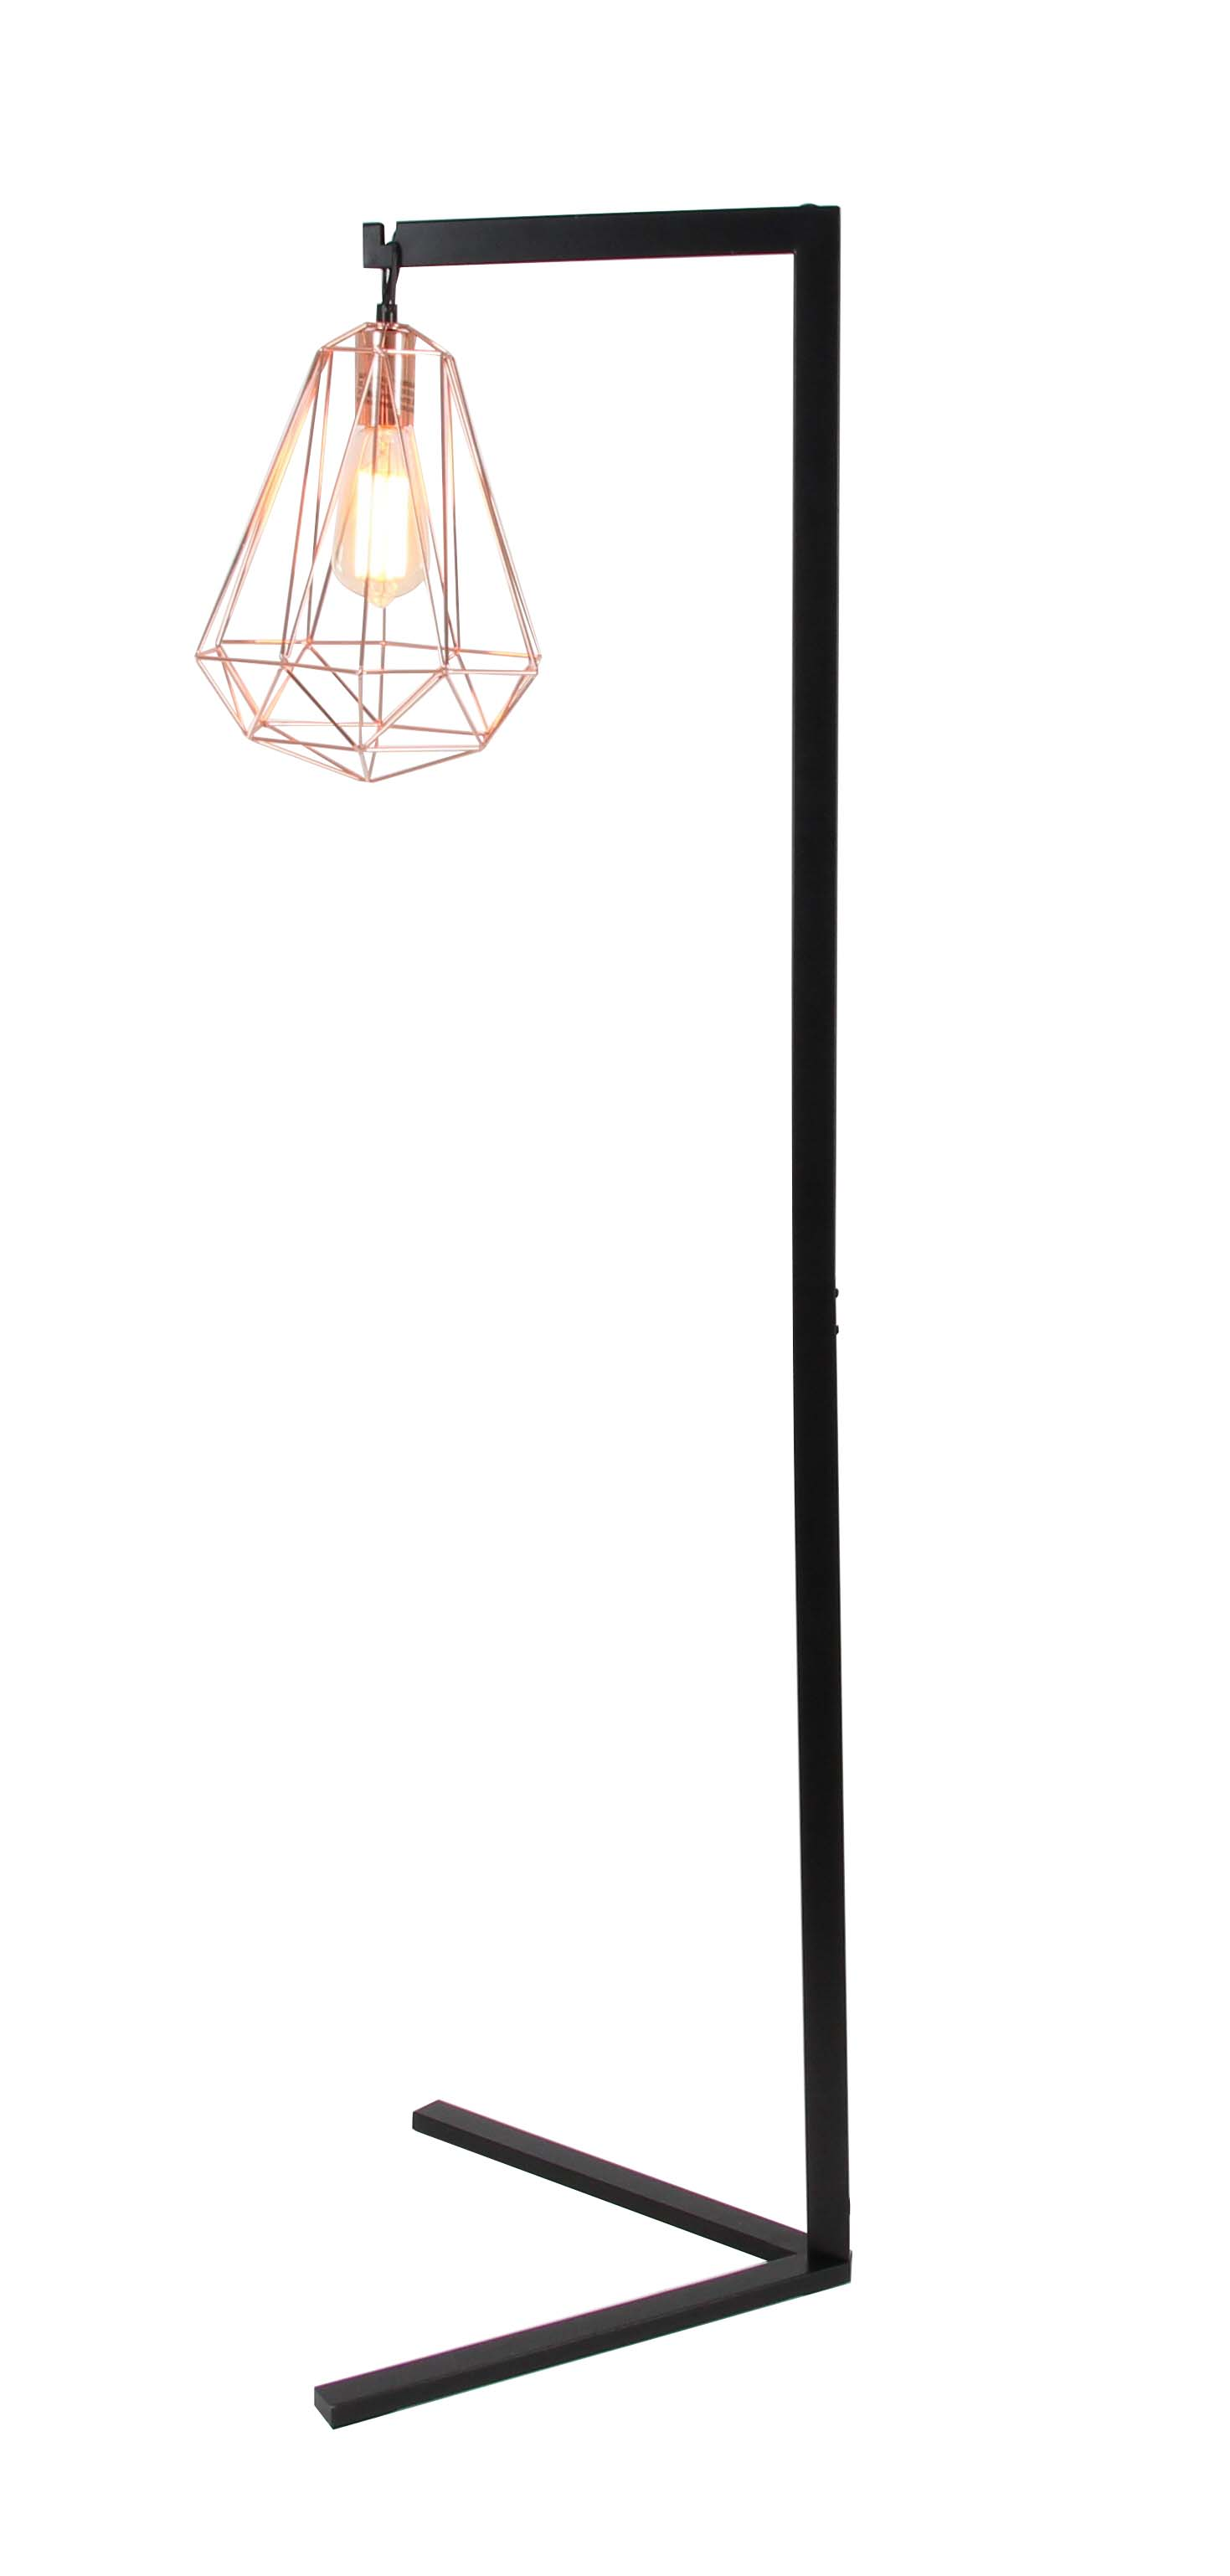 Decmode Modern 55 Inch Black and Rose Gold Iron Wire Diamond Prism Caged Floor Lamp, Black by DecMode